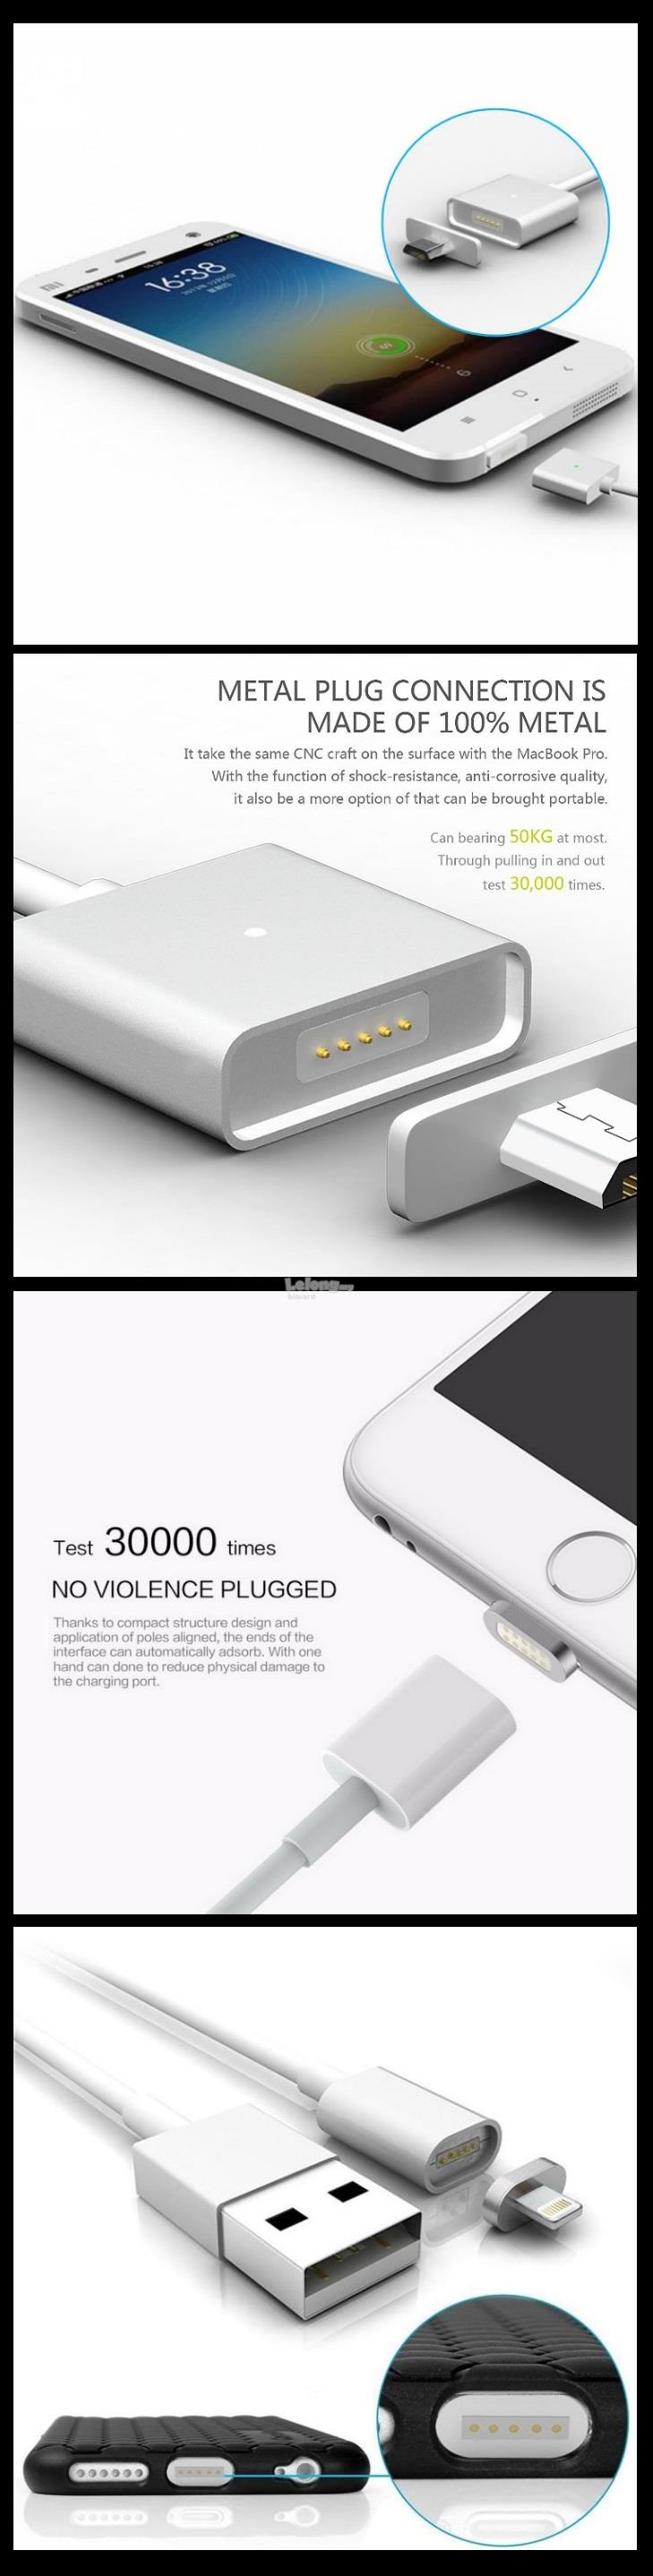 Magnetic USB Cable for Iphone